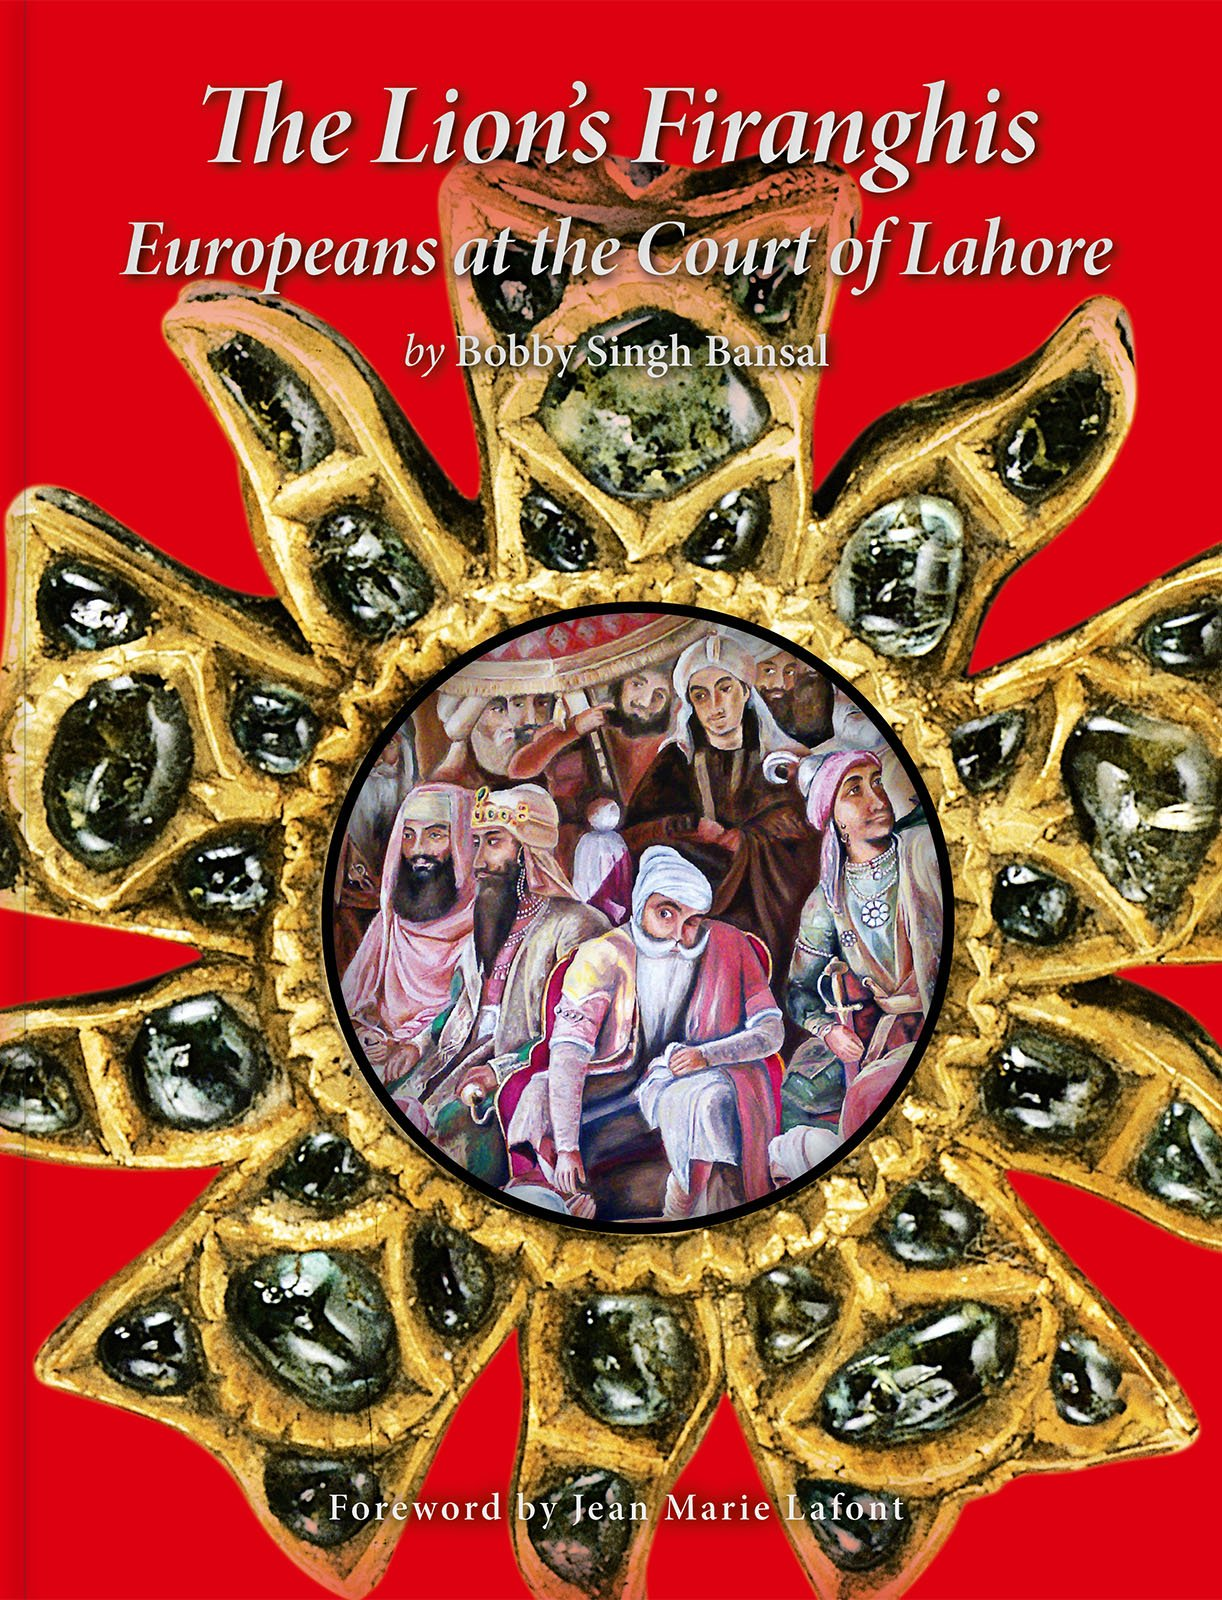 The Lion's Firanghis: Europeans at the Court of Lahore PDF